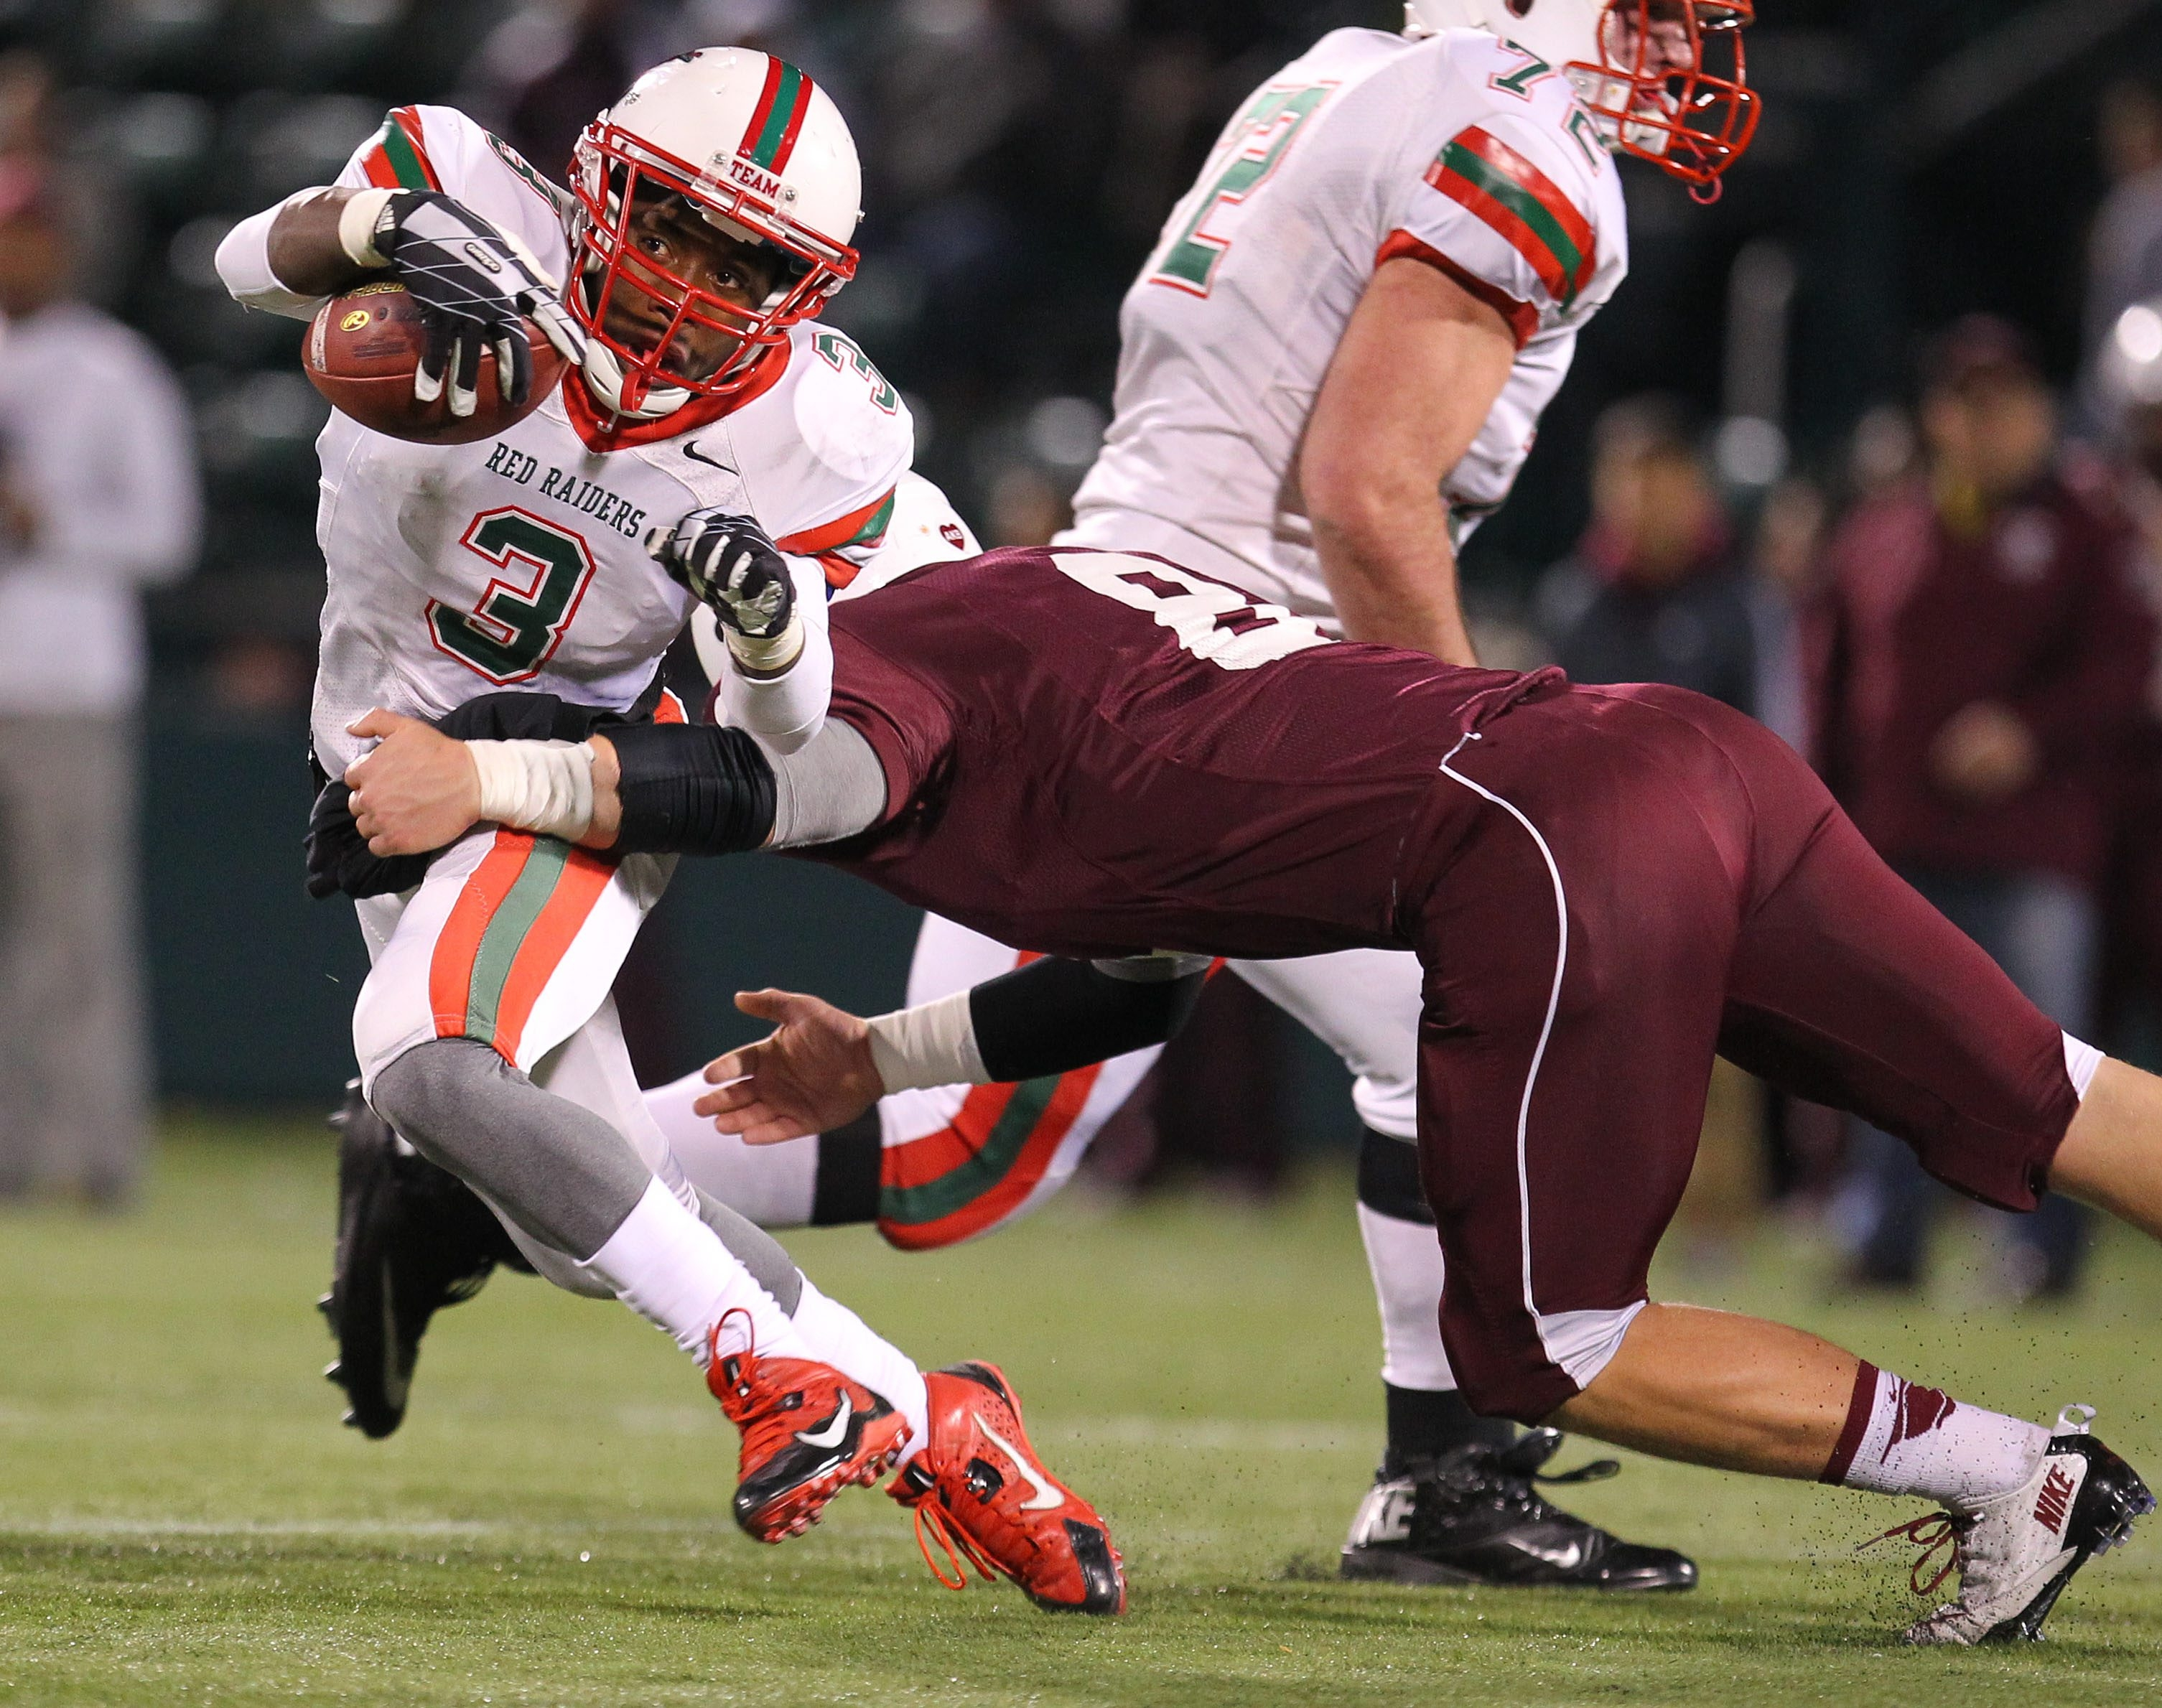 Jamestown's Zacc Kinsey tries to get past Aquinas' Charlie Rist.